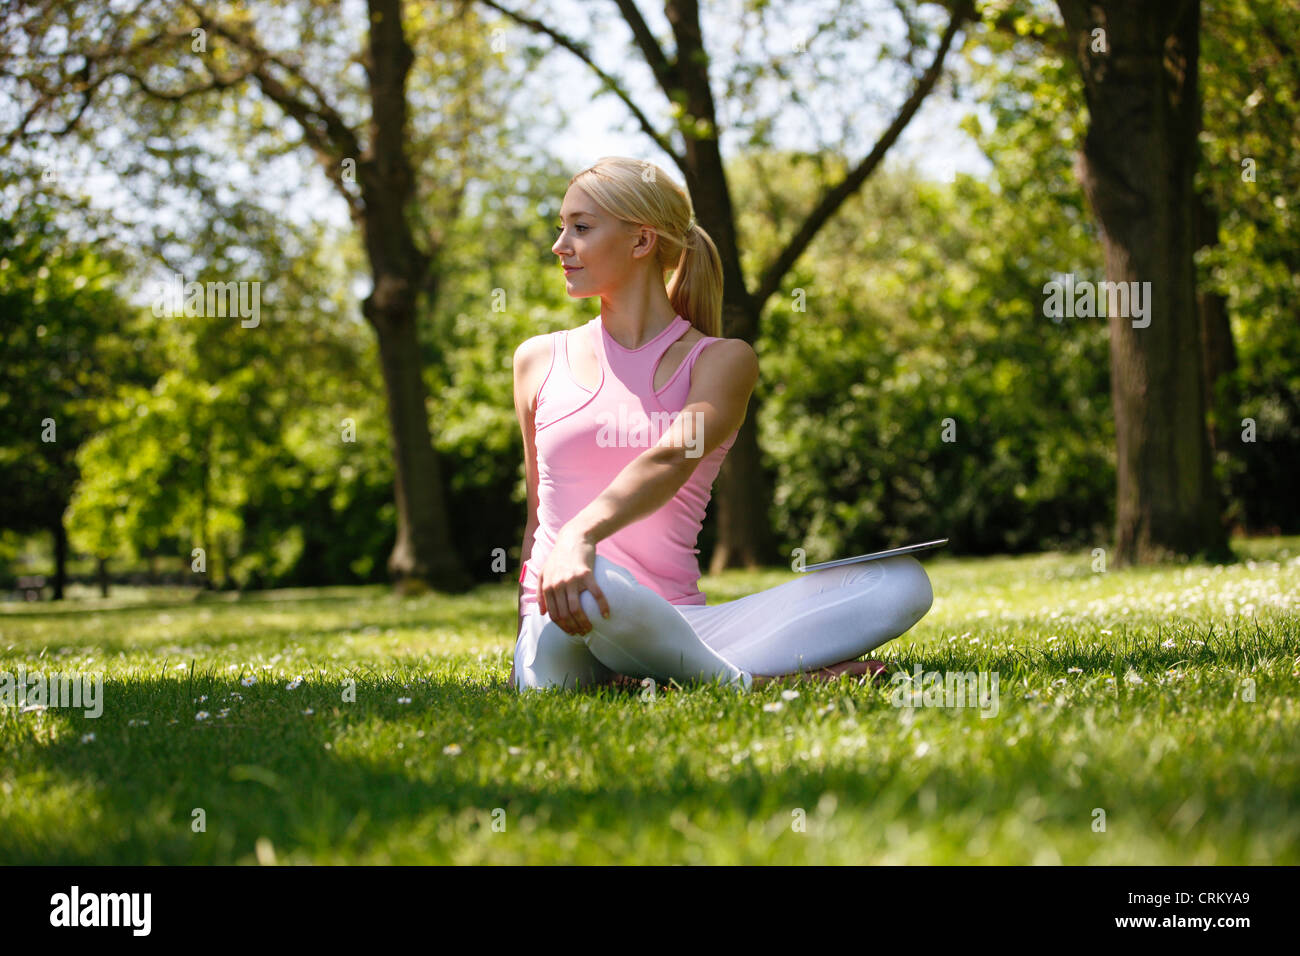 A young blond woman sitting in the grass, stretching - Stock Image